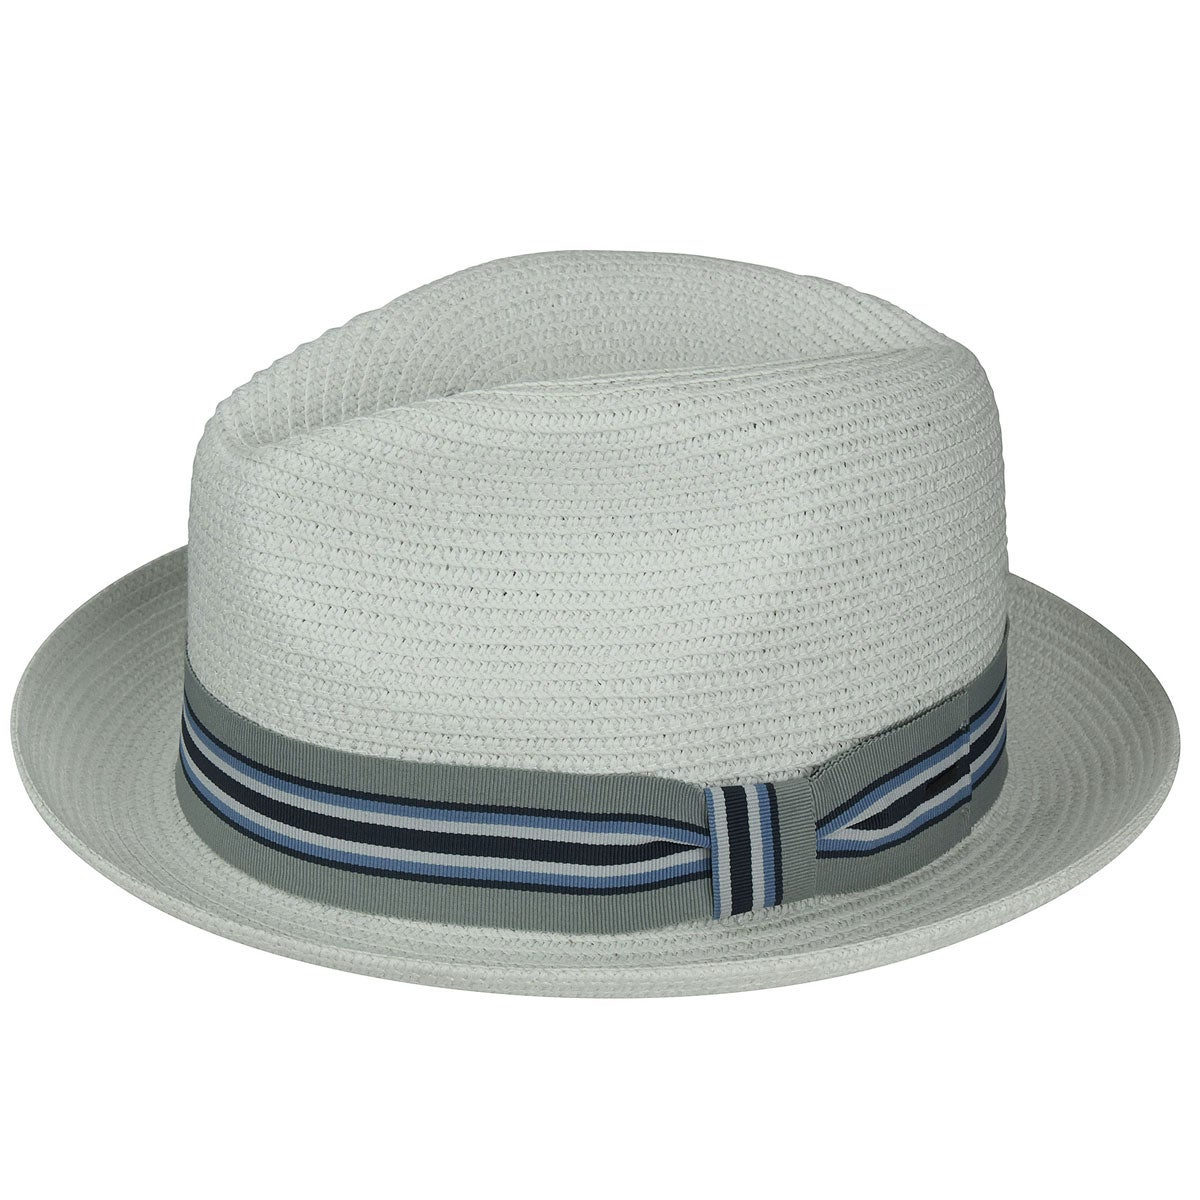 1950s Mens Hats | 50s Vintage Men's Hats Salem Braided Fedora $66.00 AT vintagedancer.com